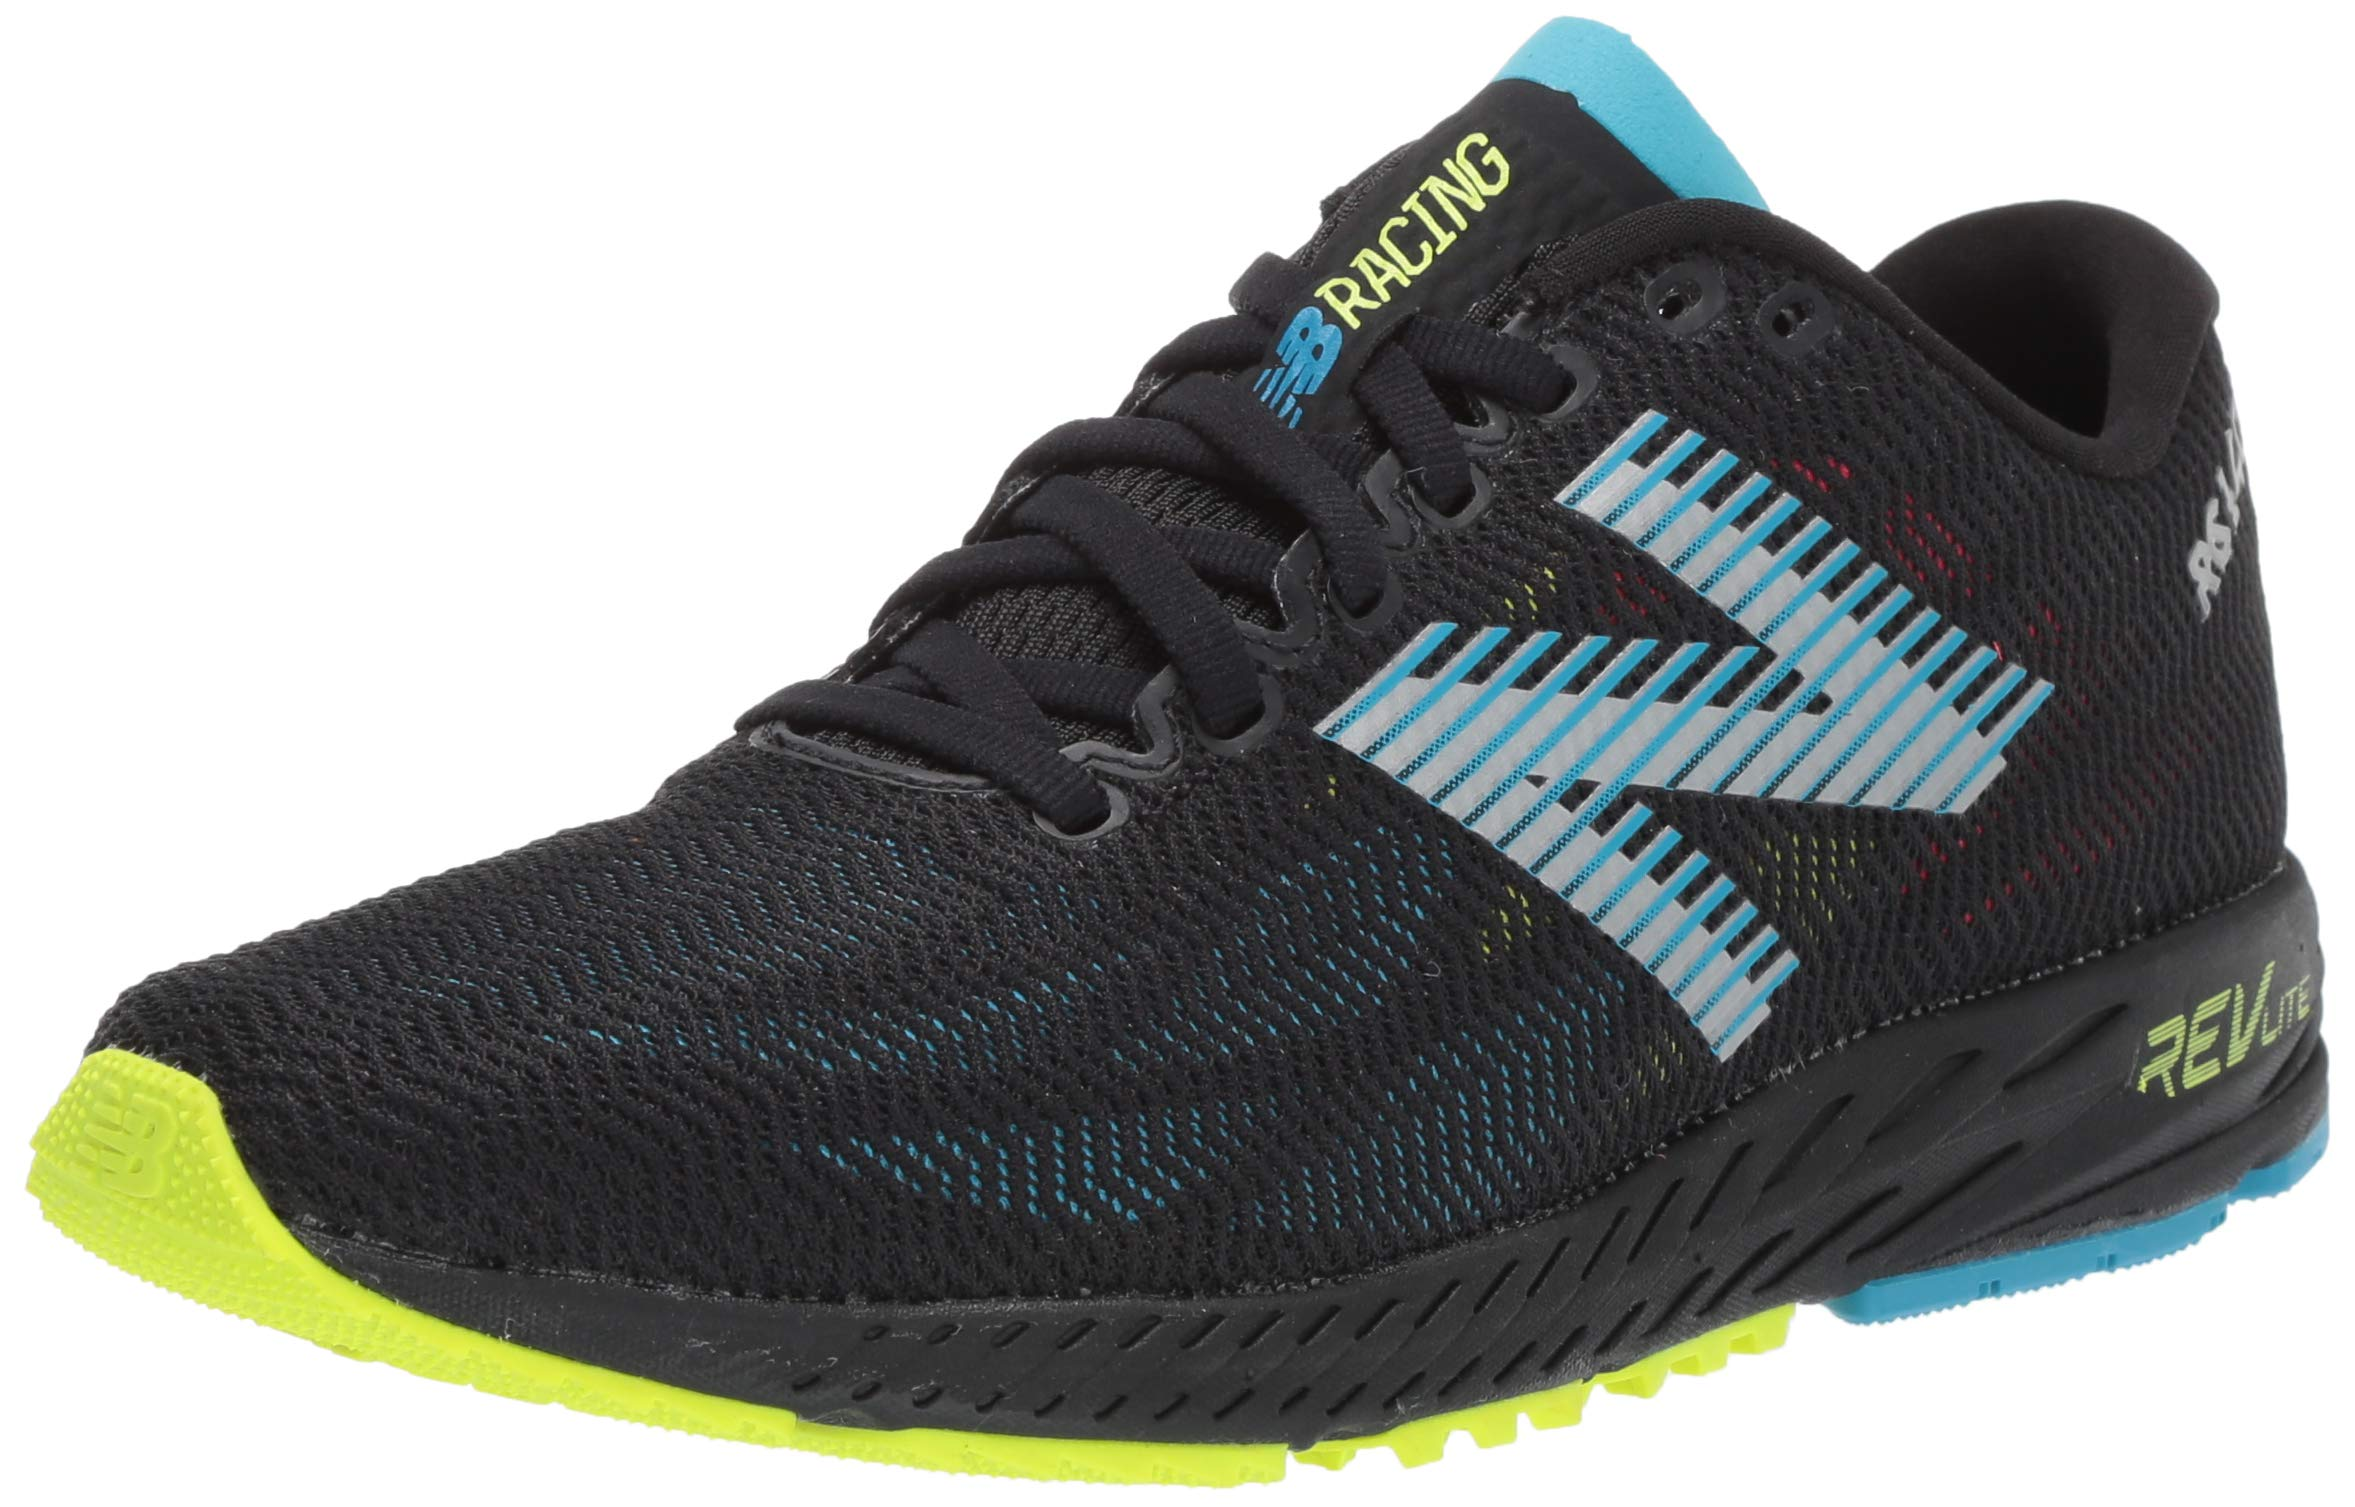 New Balance Men's 1400v6 Running Shoe, Black/Polaris, 10.5 D US by New Balance